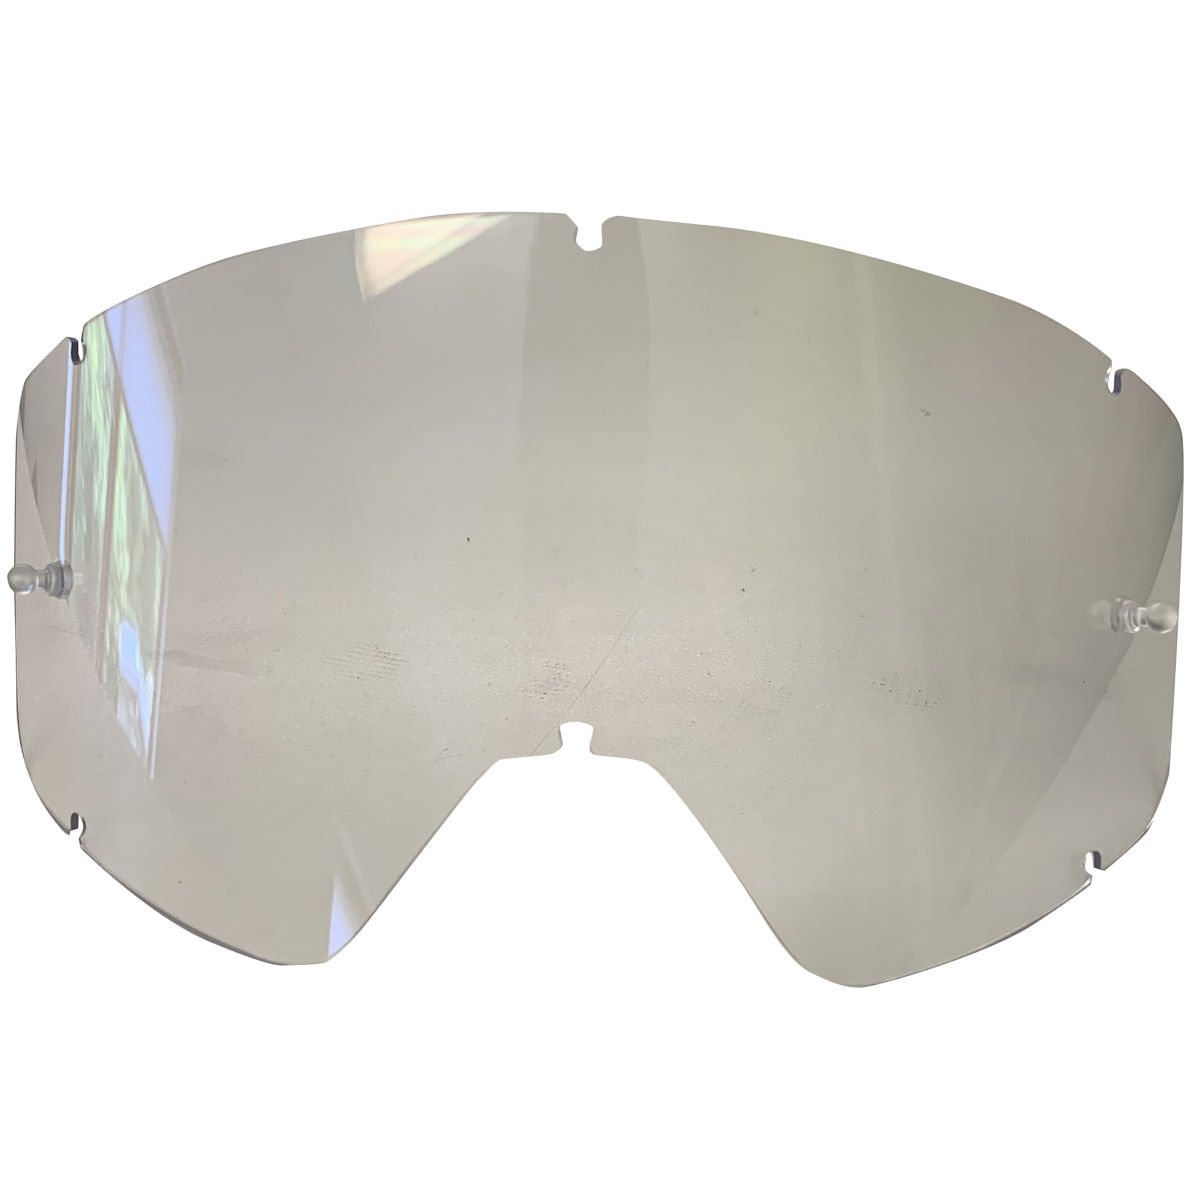 SixSixOne Radia Goggle Clear Lens Replacement - Máscaras de ciclismo